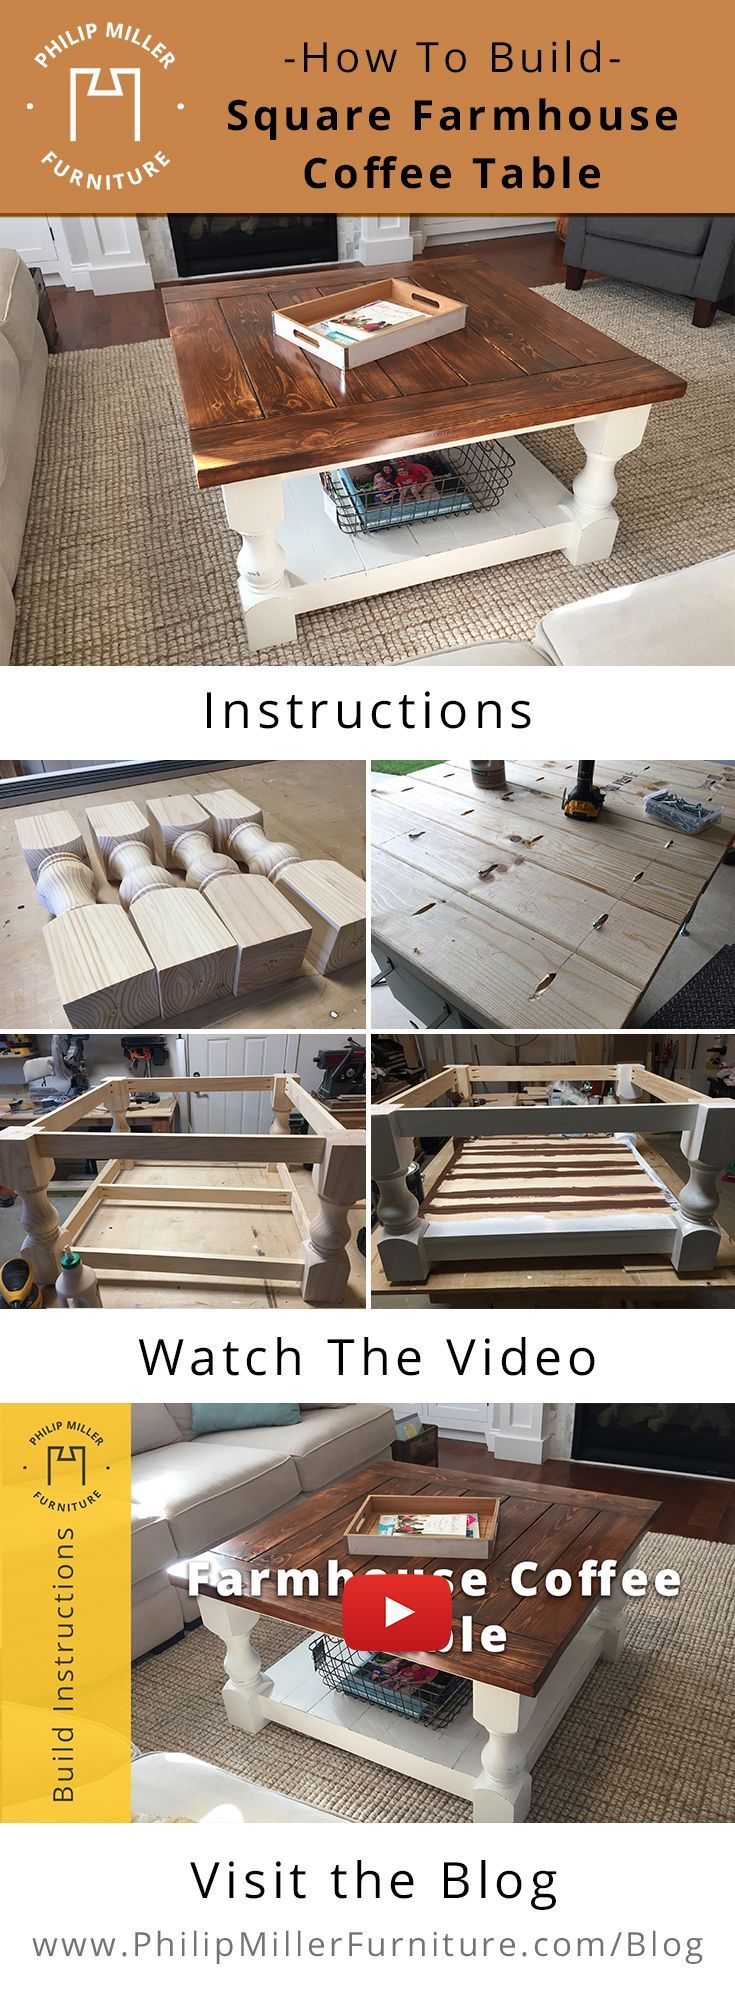 How to build a square farmhouse coffee table with instructions and